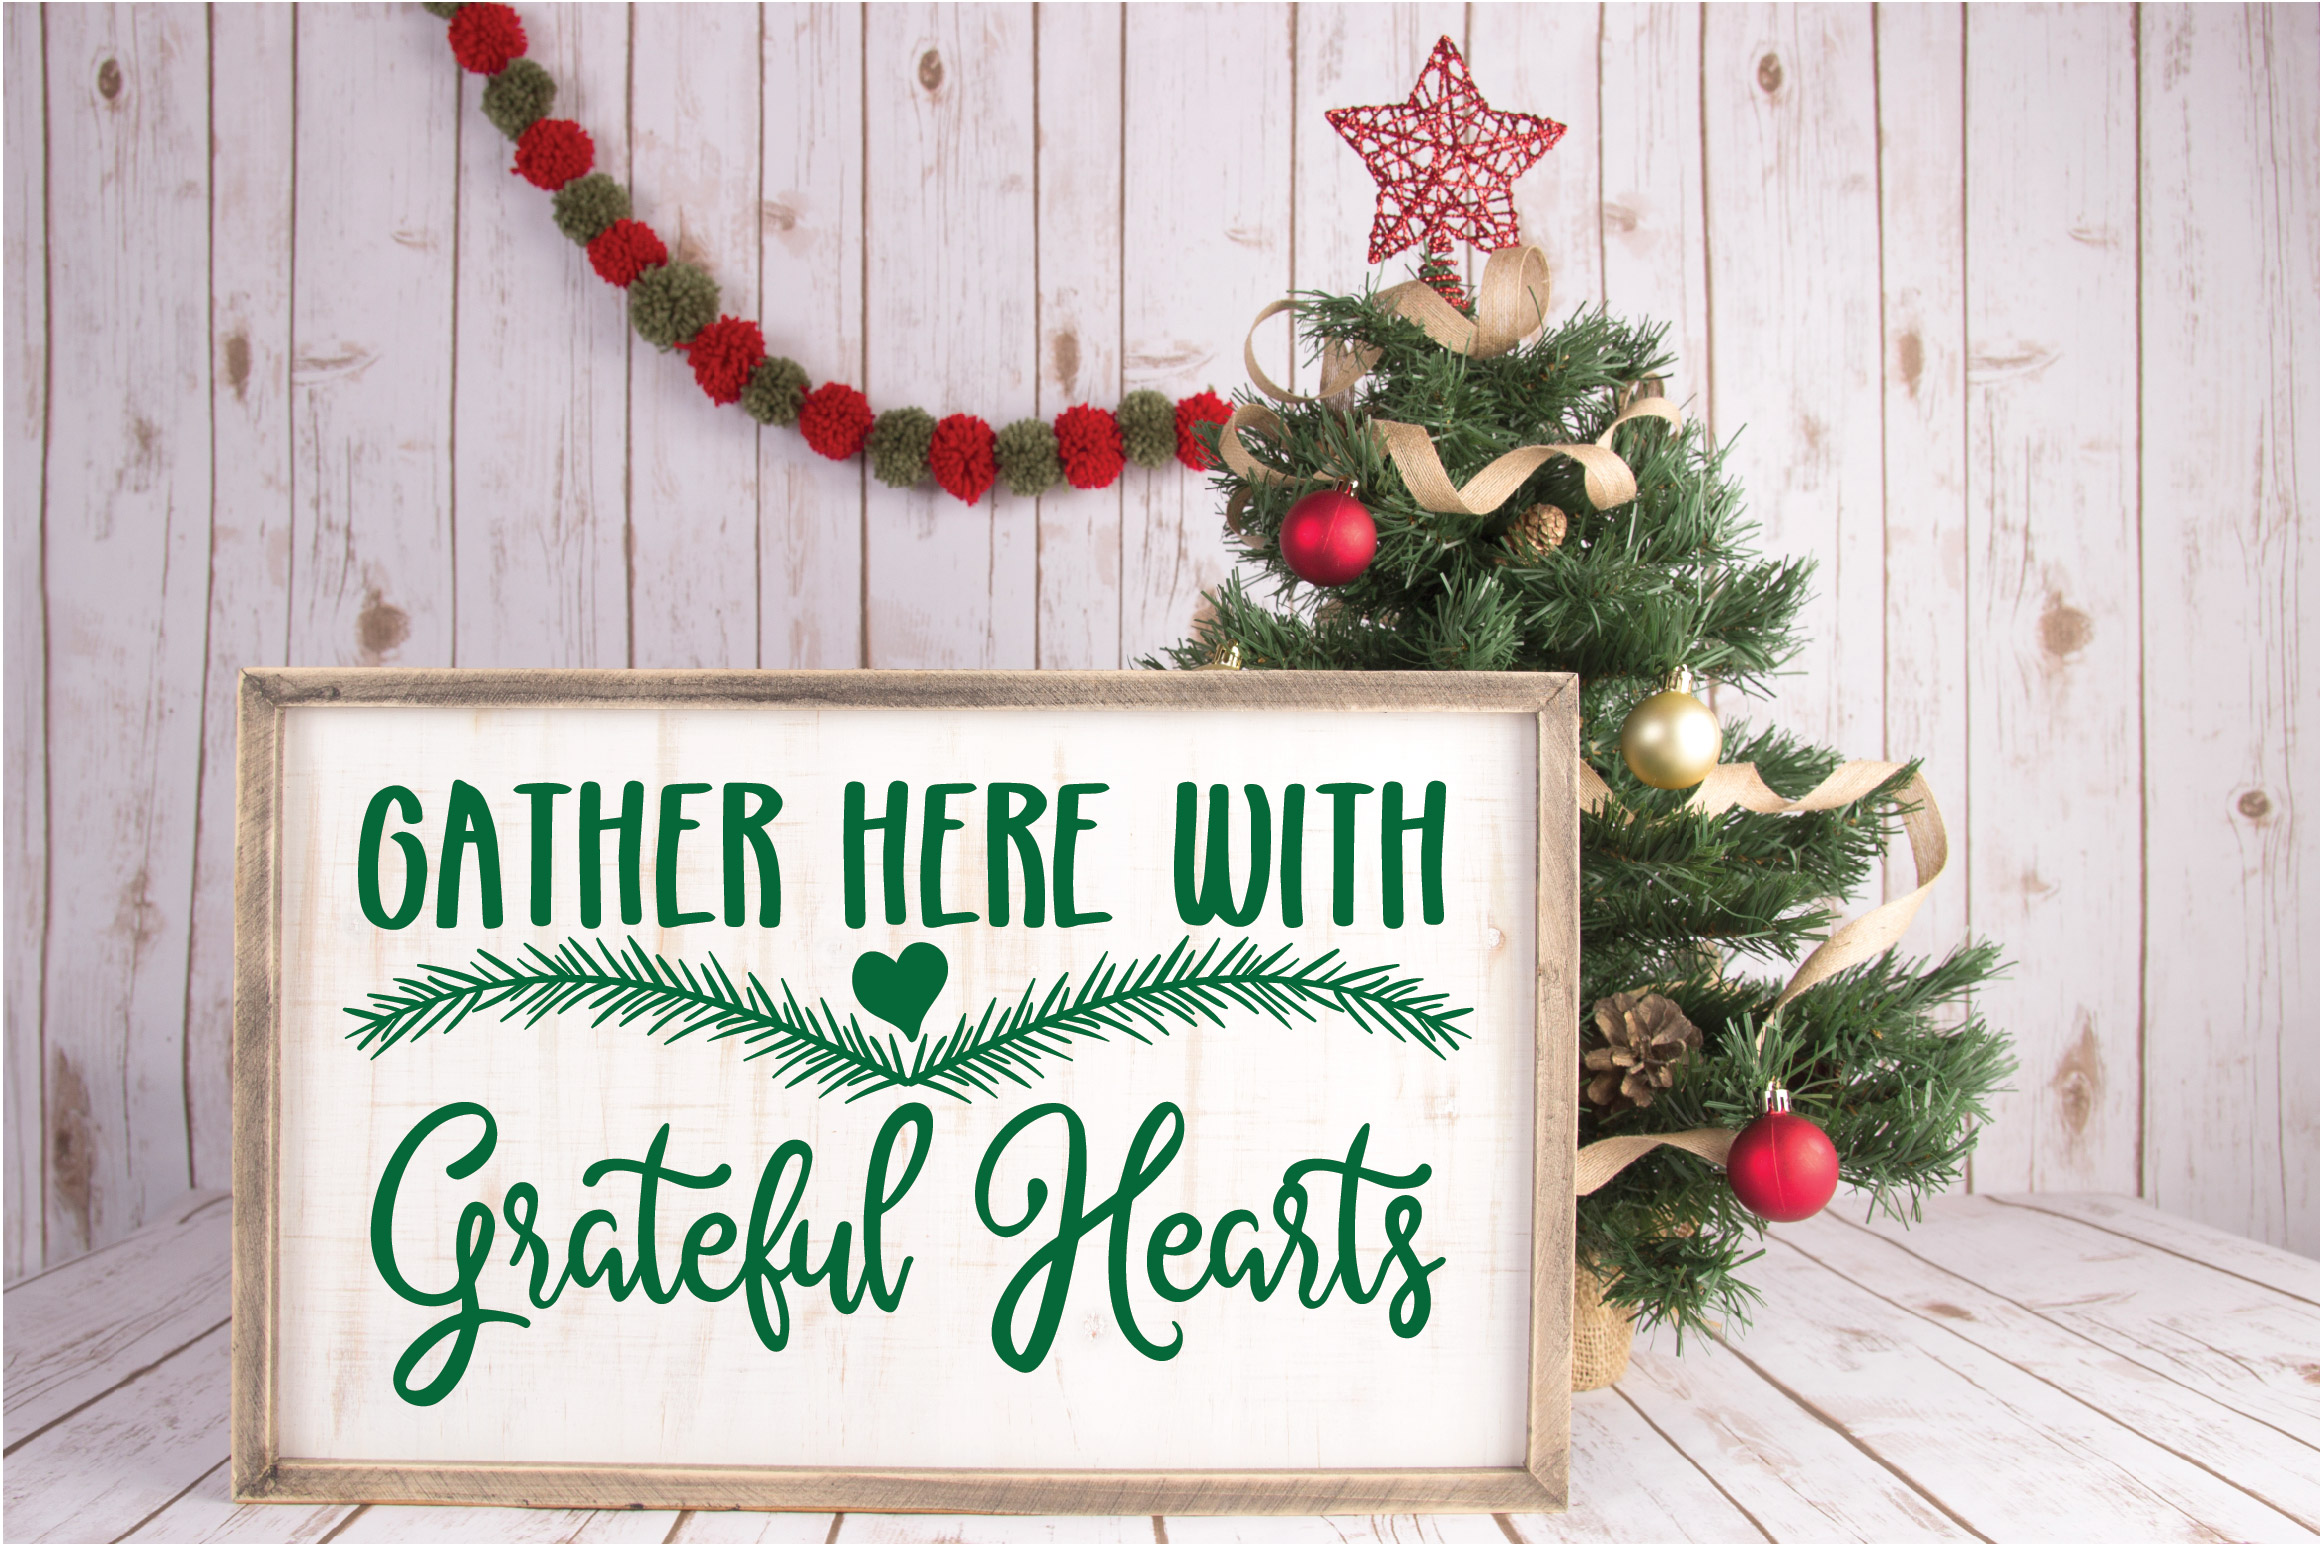 Christmas SVG Cut File -Gather Here with Grateful Hearts SVG example image 4